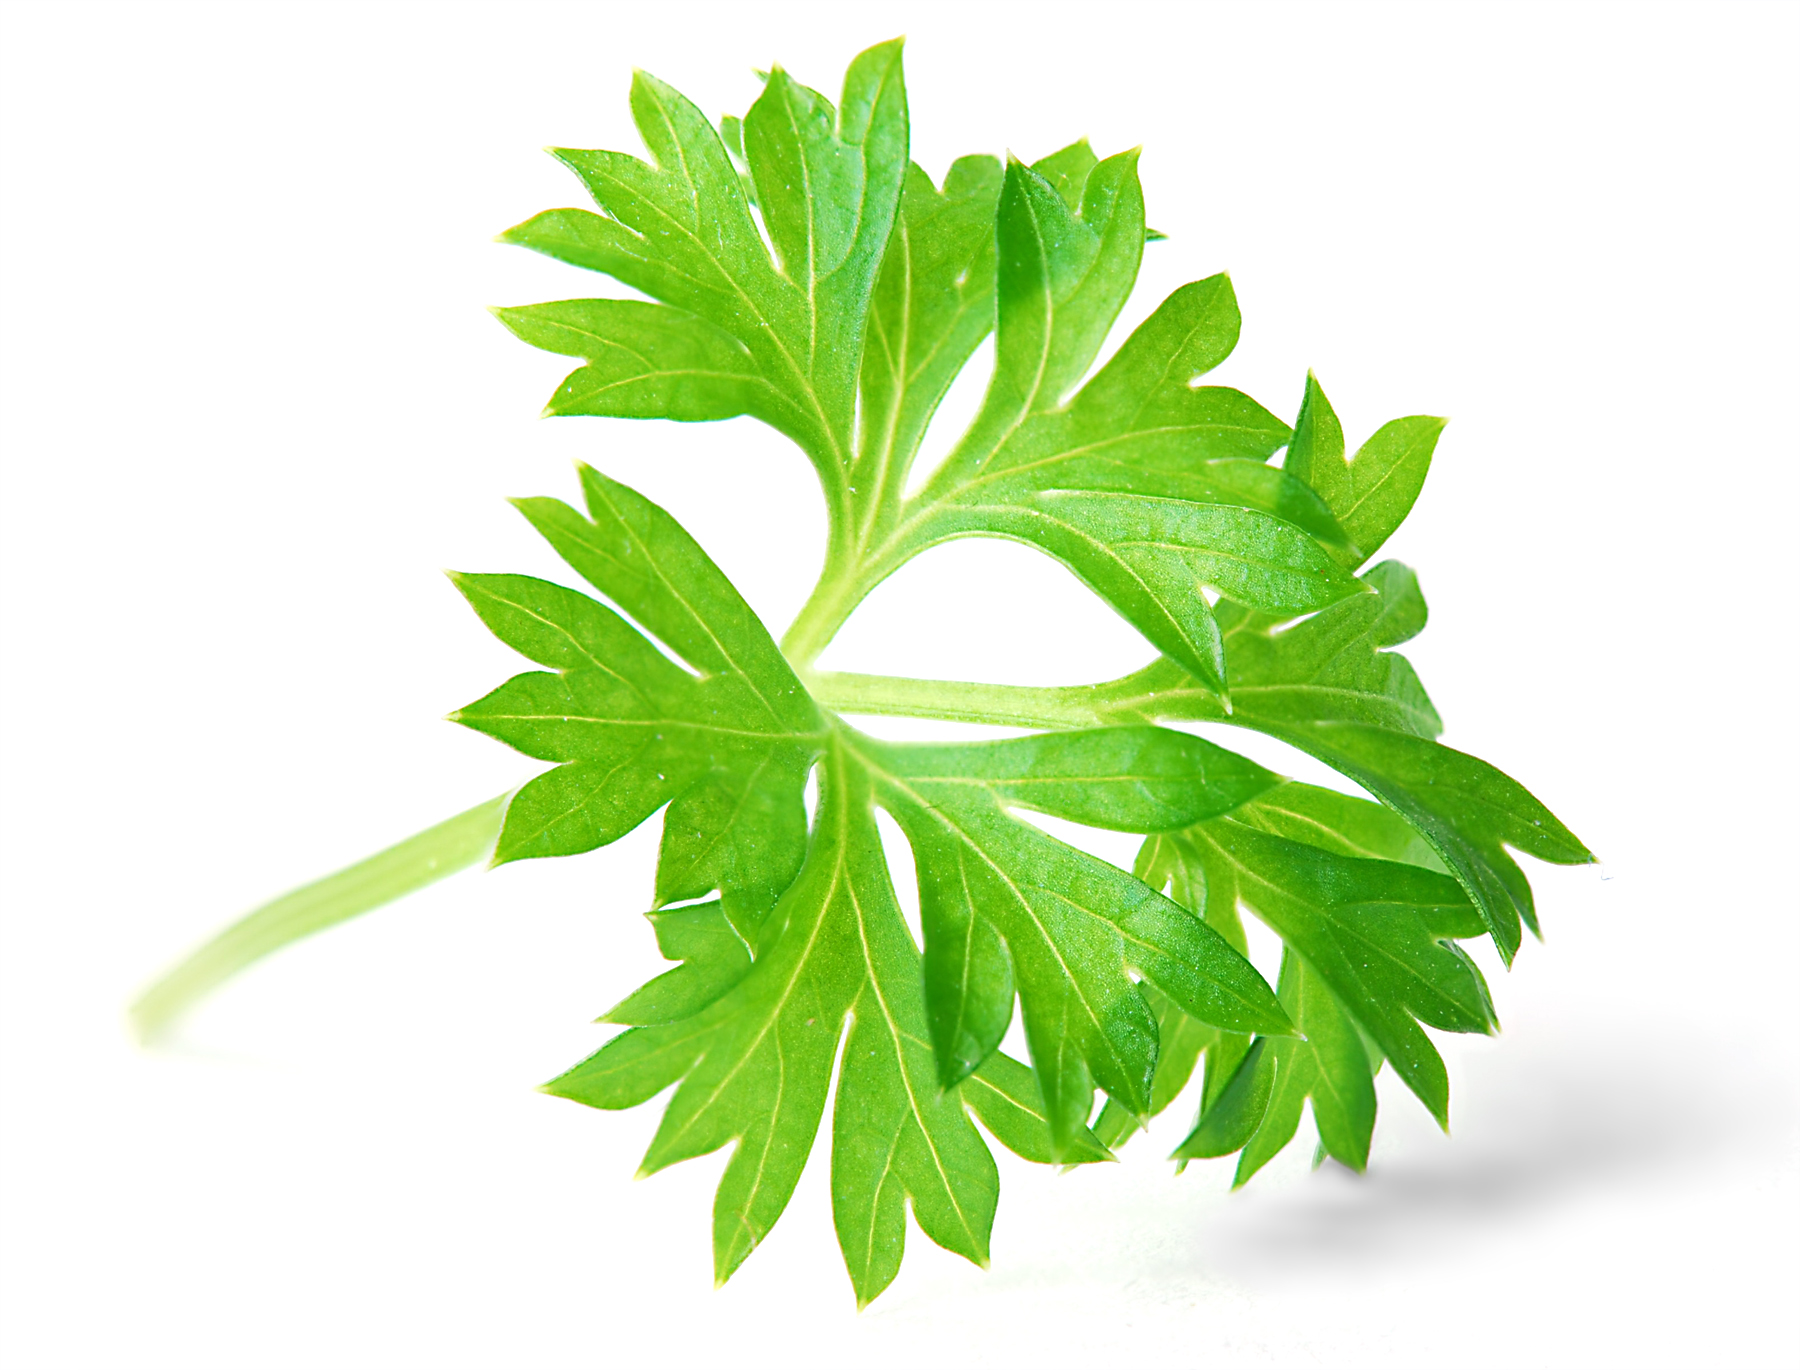 Parsley - Learn, Compare Products, and Save at PricePlow